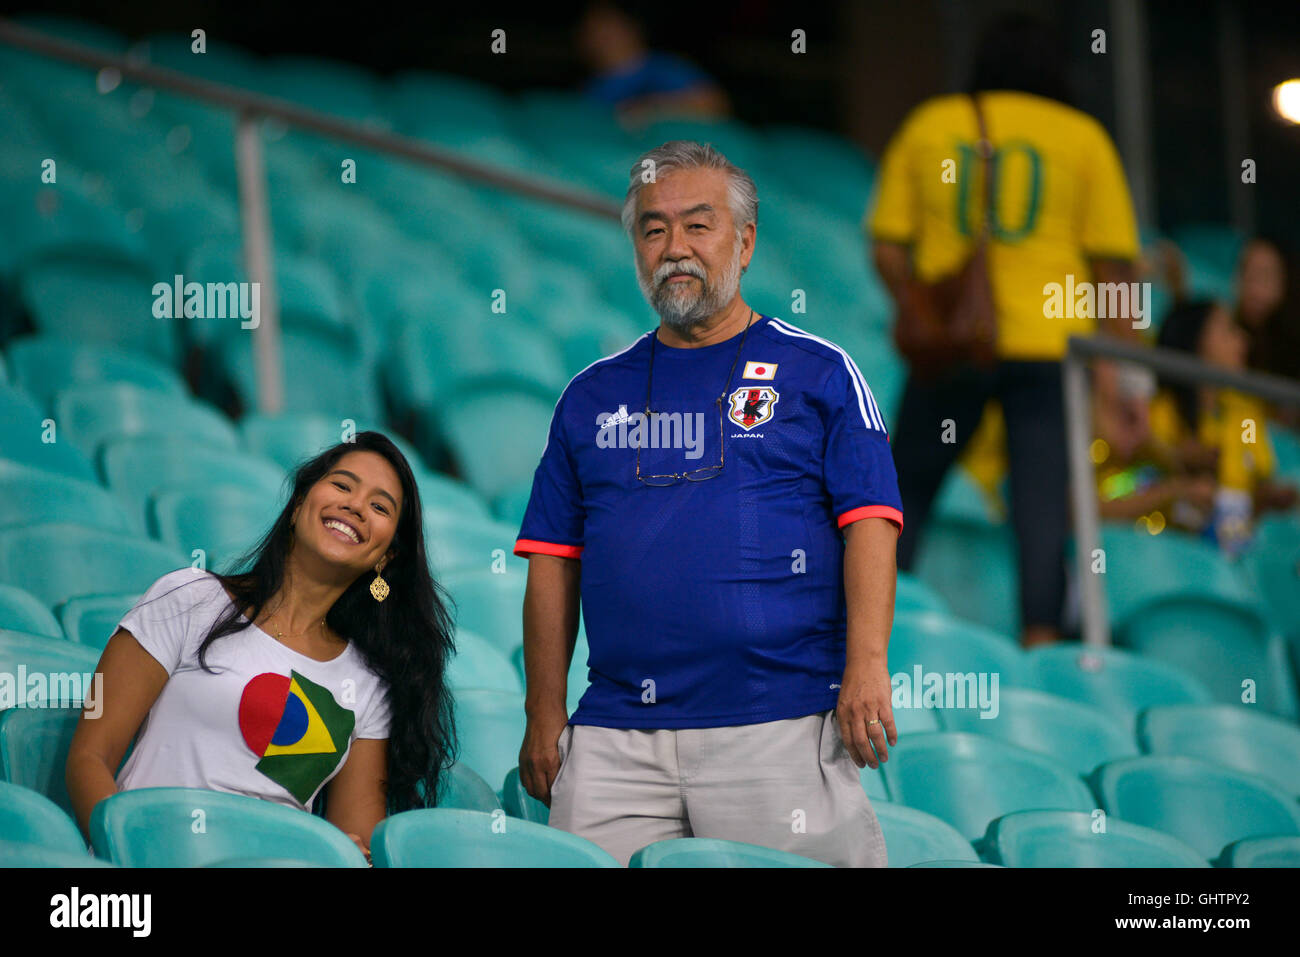 Salvador, Brazil. 10th August, 2016. OLYMPICS 2016 FOOTBALL SALVADOR - Fans arrive for the match between Japan (JPN) Stock Photo